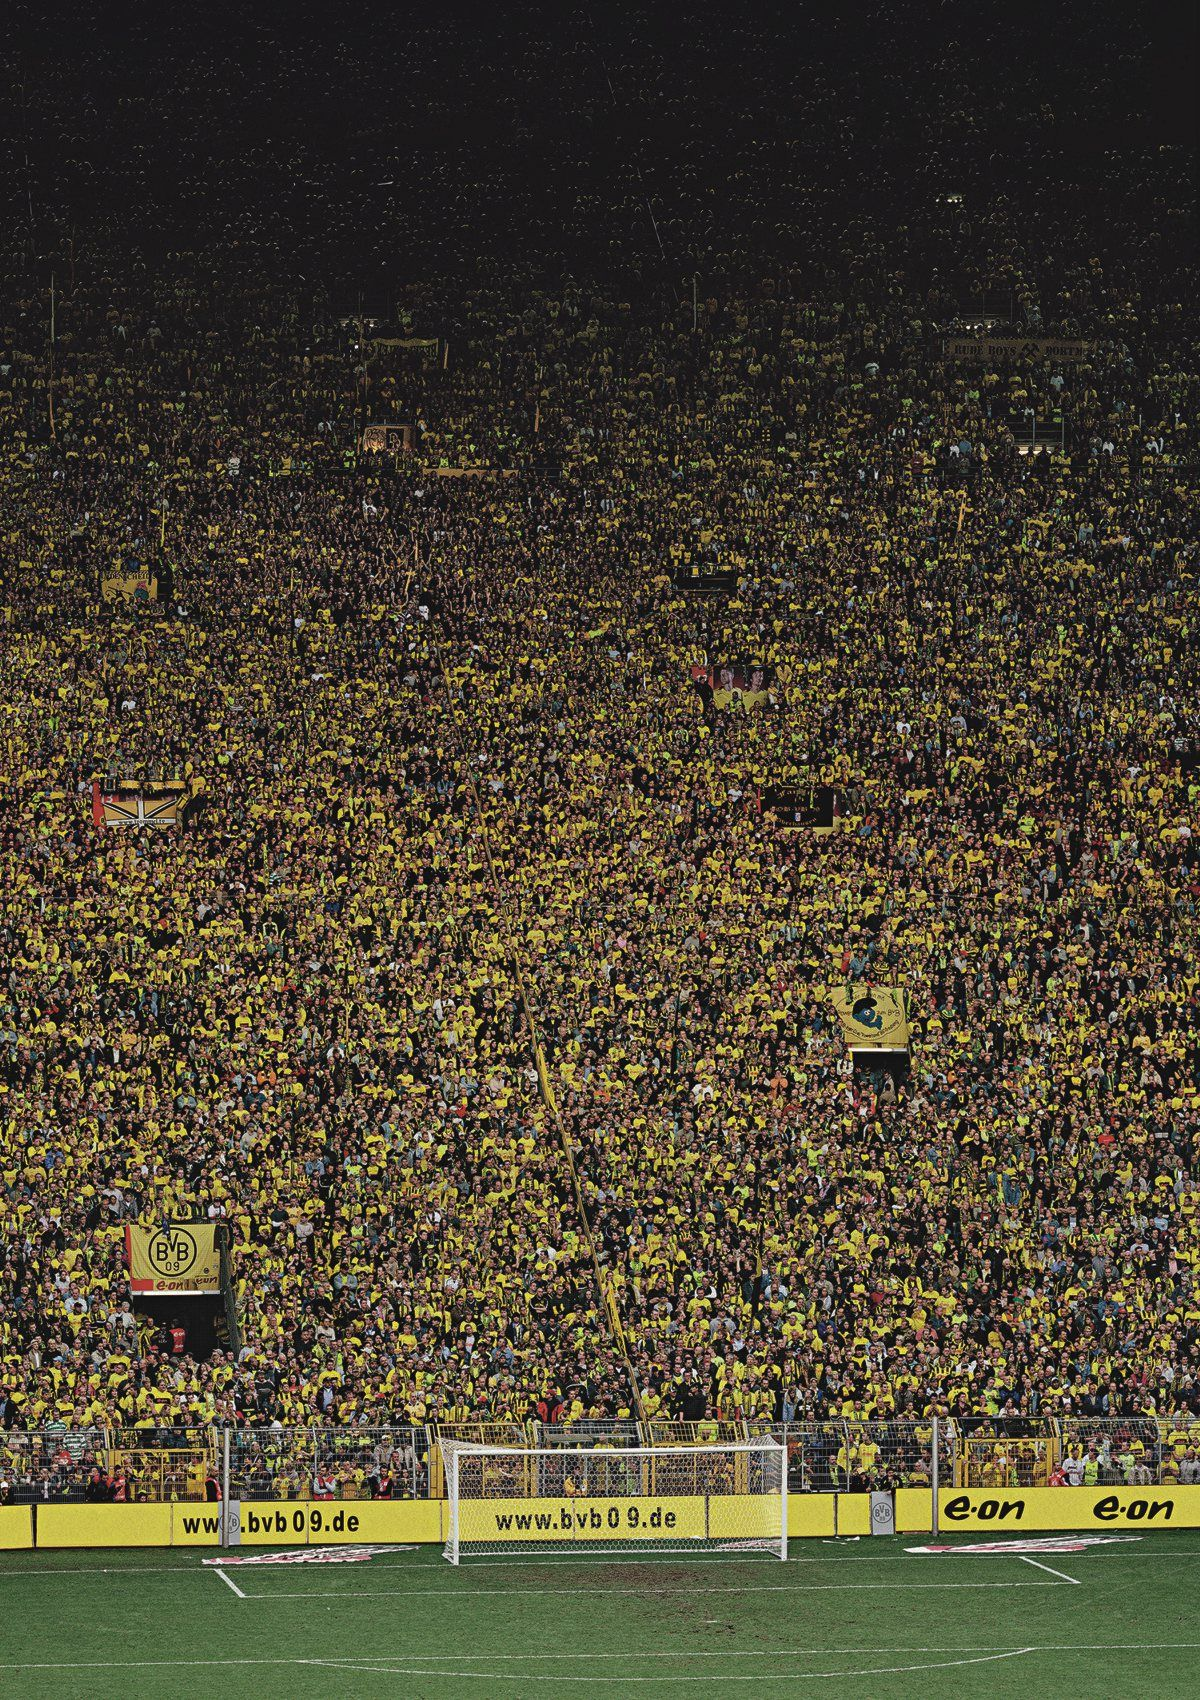 Andreas Gursky Public Delivery Andreas Gursky Soccer Dortmund